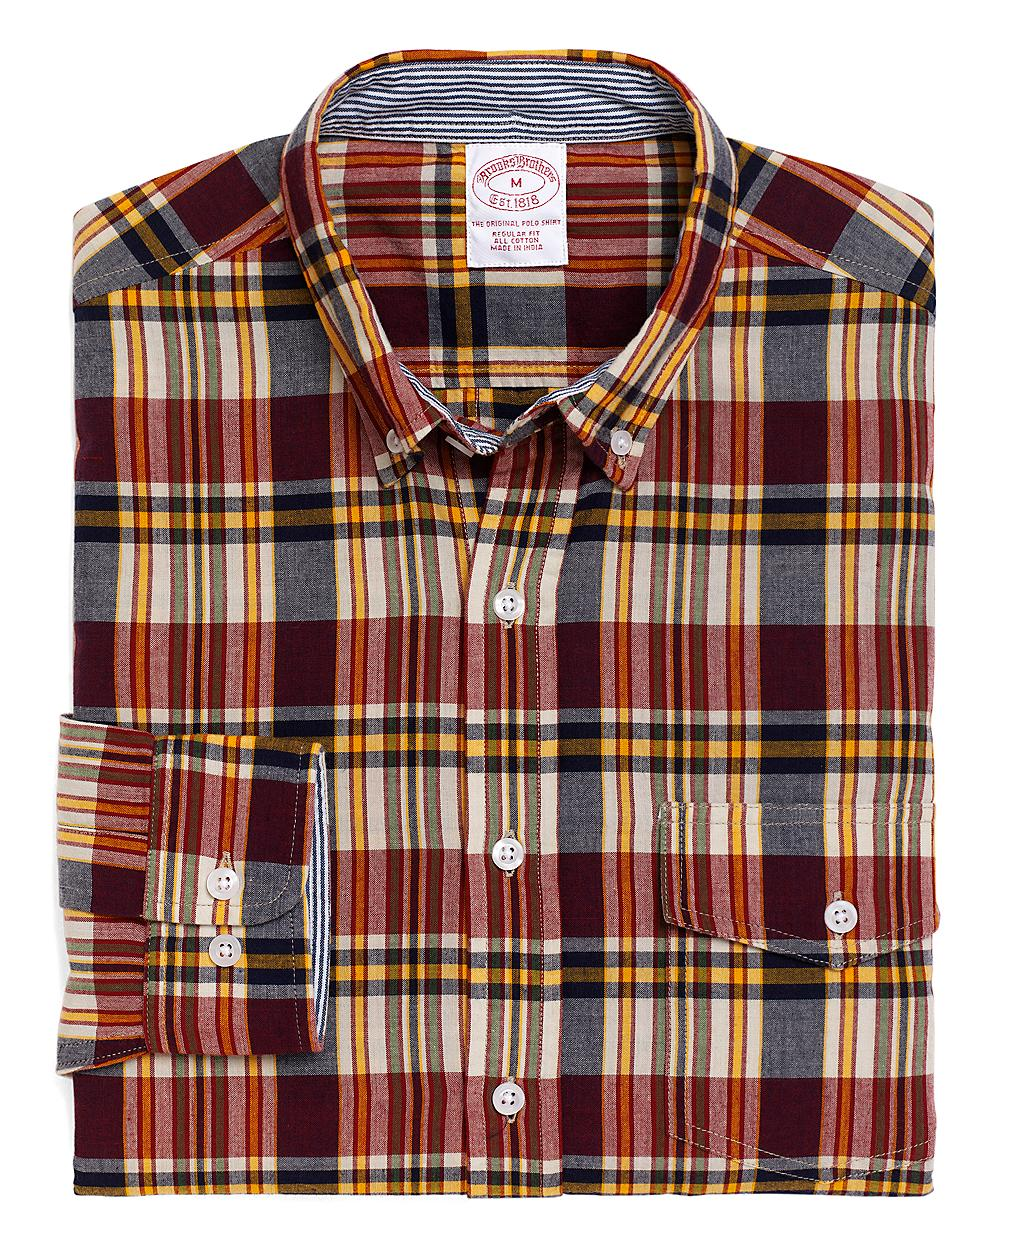 lyst brooks brothers plaid madras sport shirt in brown. Black Bedroom Furniture Sets. Home Design Ideas